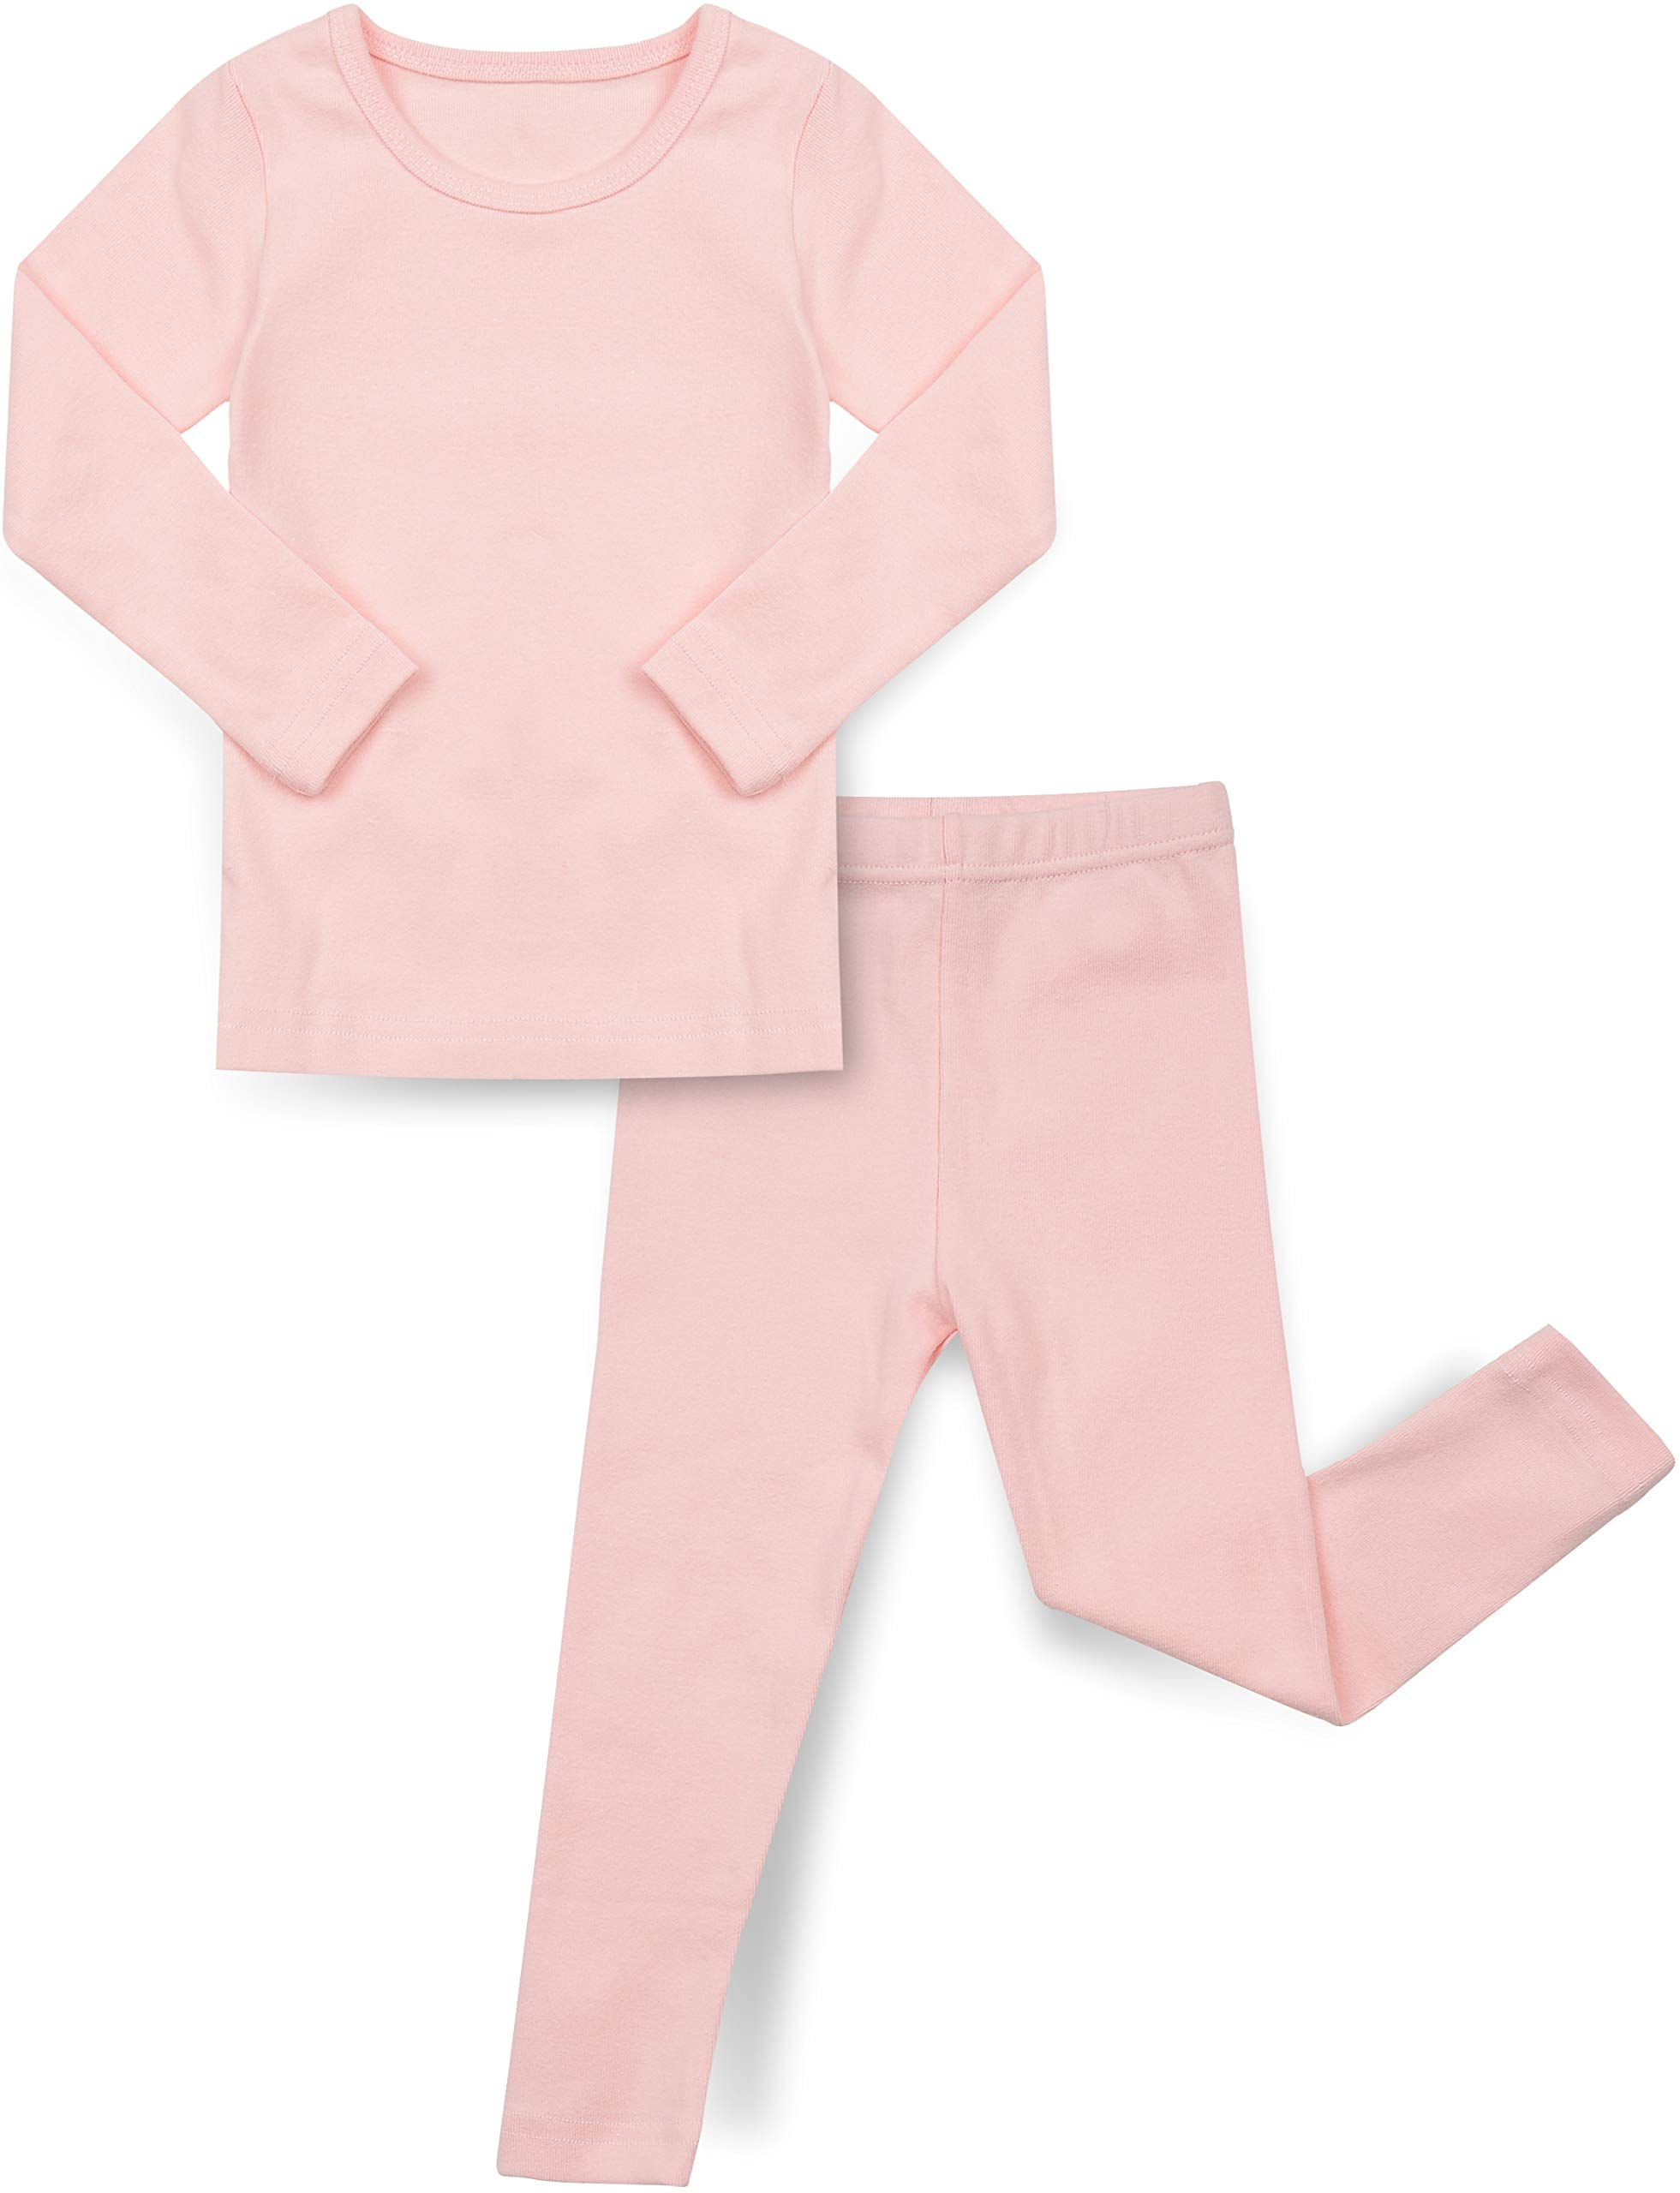 AVAUMA Baby Boys Girls Solid Pring Pj Set Kids Pajamas Long Sleeve Cotton (Spring Pink-1 Small)